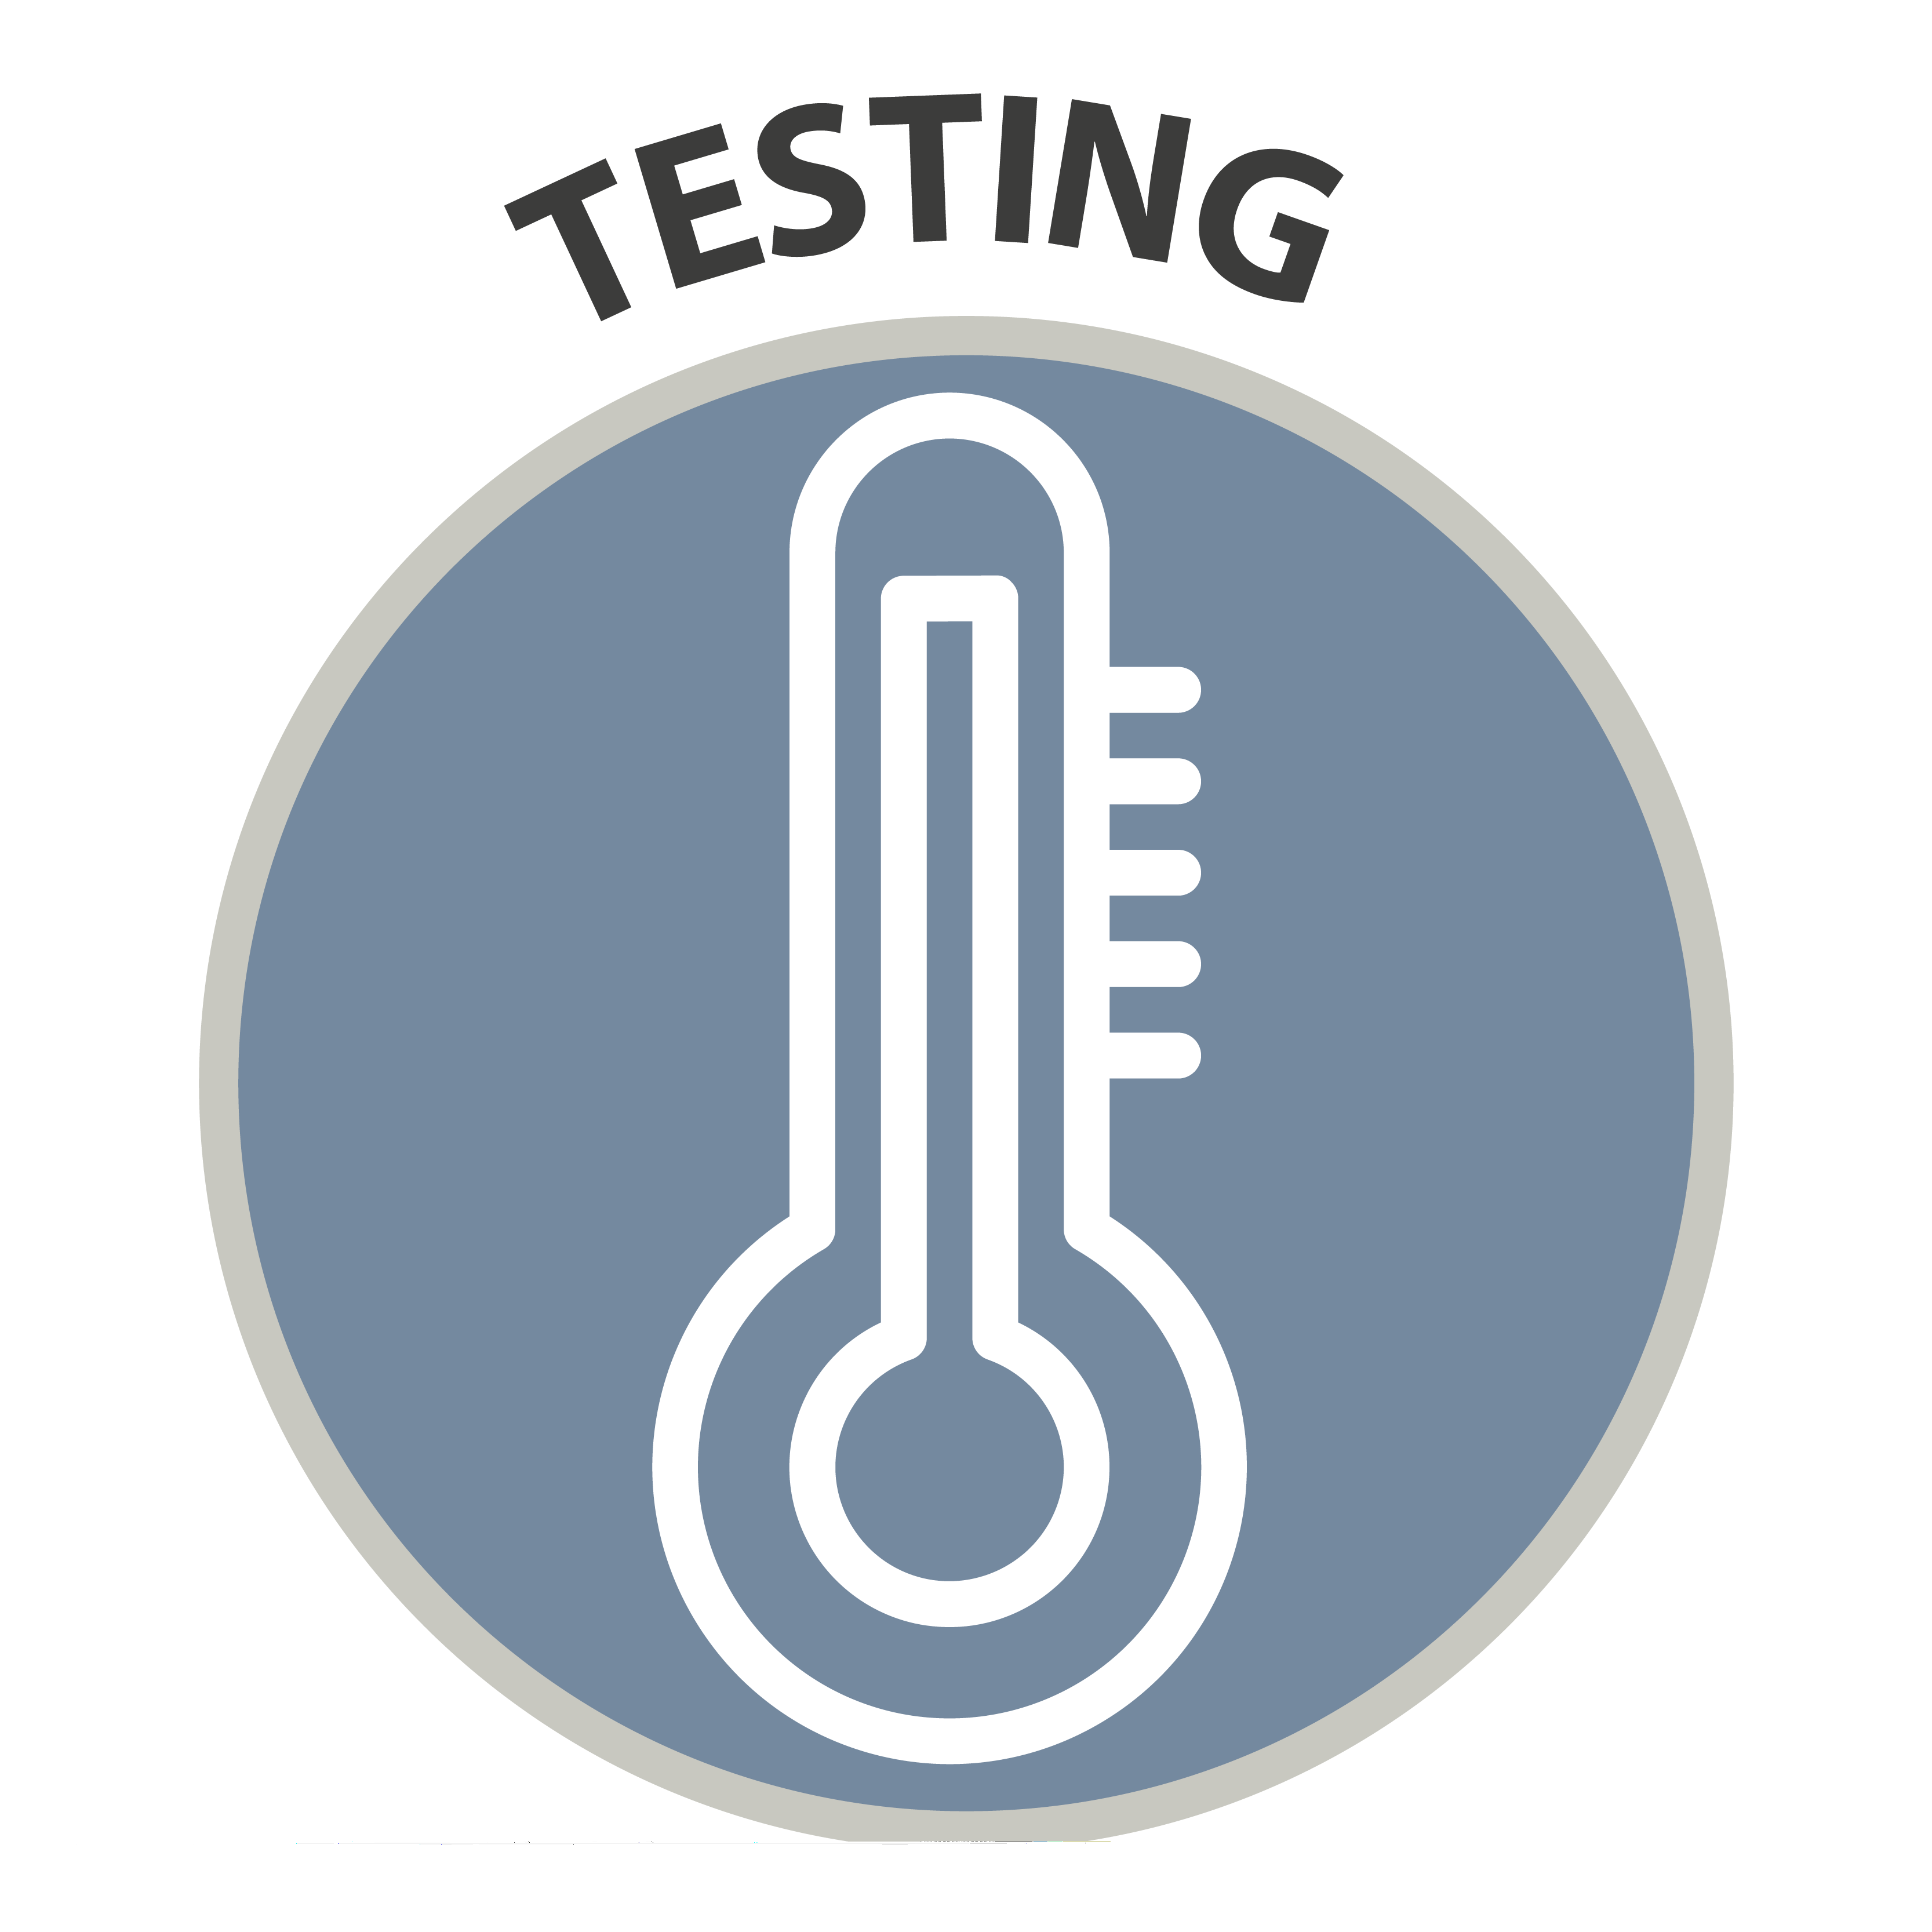 Testing - icon of thermometer